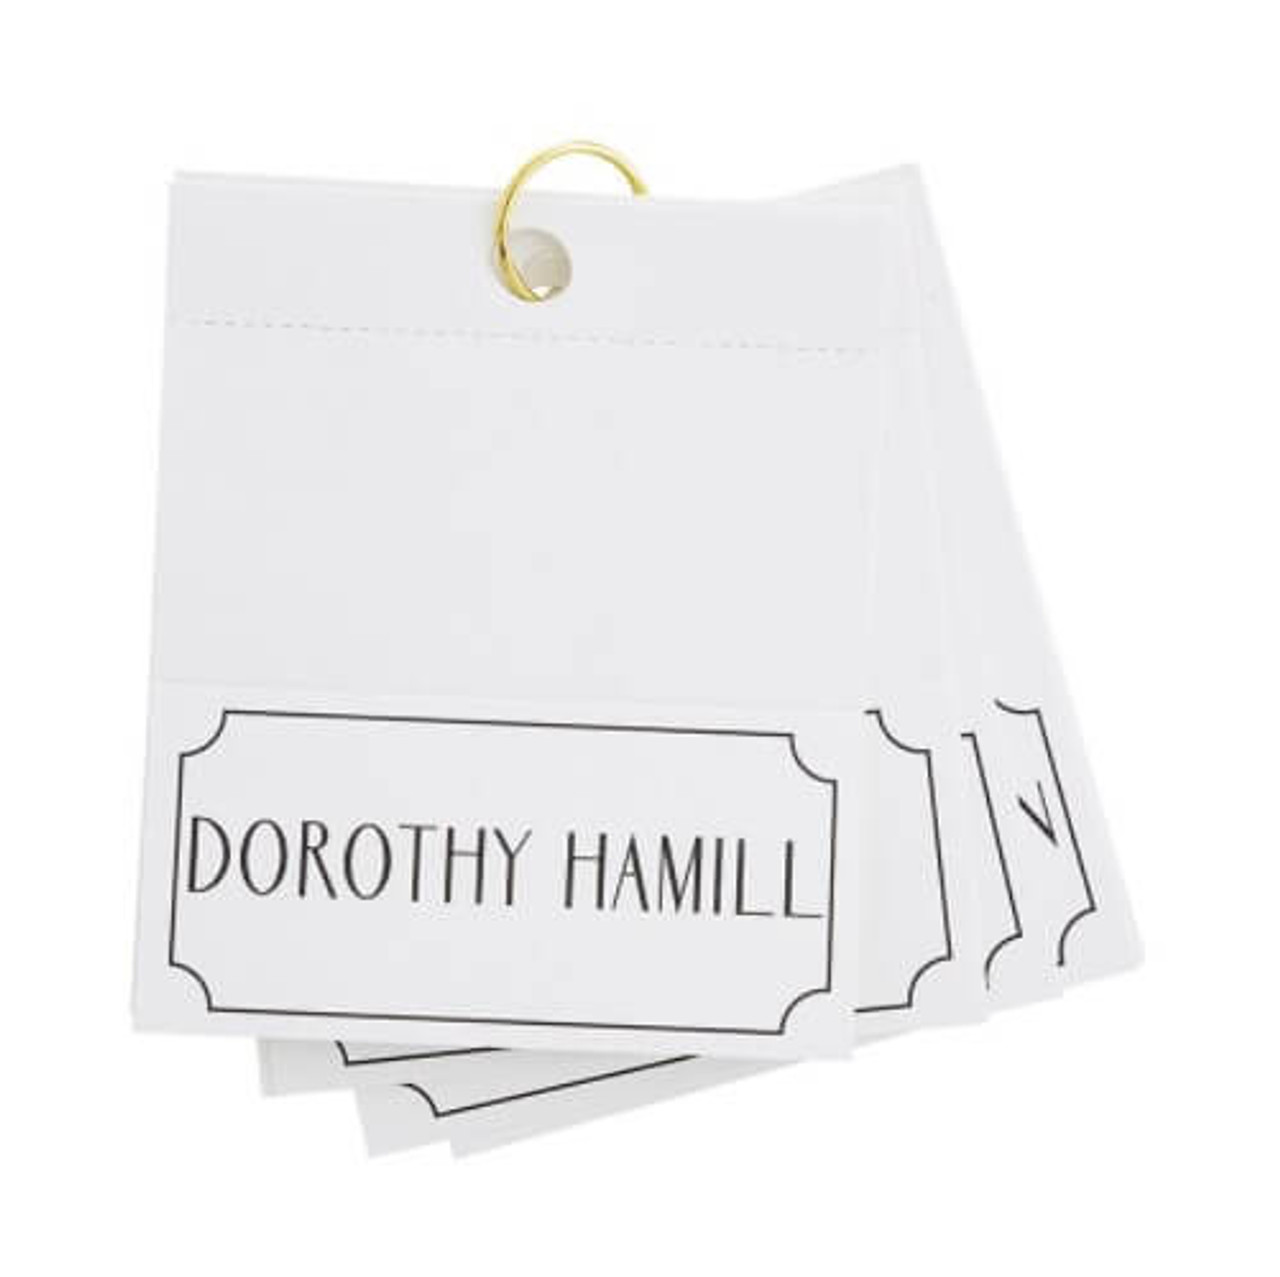 """Bring some laughs and a championship feeling to your next dinner party with a set of female athlete place cards. Folded cards measure 2 3/8"""" H x 4 3/4"""" W.  This set of 24 cards features some of the most recognized names from the concert stage including Lindsey Vonn, Diana Taurasi, Danica Patrick, Peggy Fleming, Jackie Joyner-Kersee, Martina Navratilova, Nancy Kerrigan, Tonya Harding, Michelle Wie, Maria Sharapova, Mary Lou Retton, Nancy Lopez, Nadia Comăneci, Serena Williams, Steffi Graf, Chris Evert, Mia Hamm, Dorothy Hamill, Billie Jean King, Hope Solo, Venus Williams, Michelle Kwan, Abby Wambach, Ronda Rousey"""